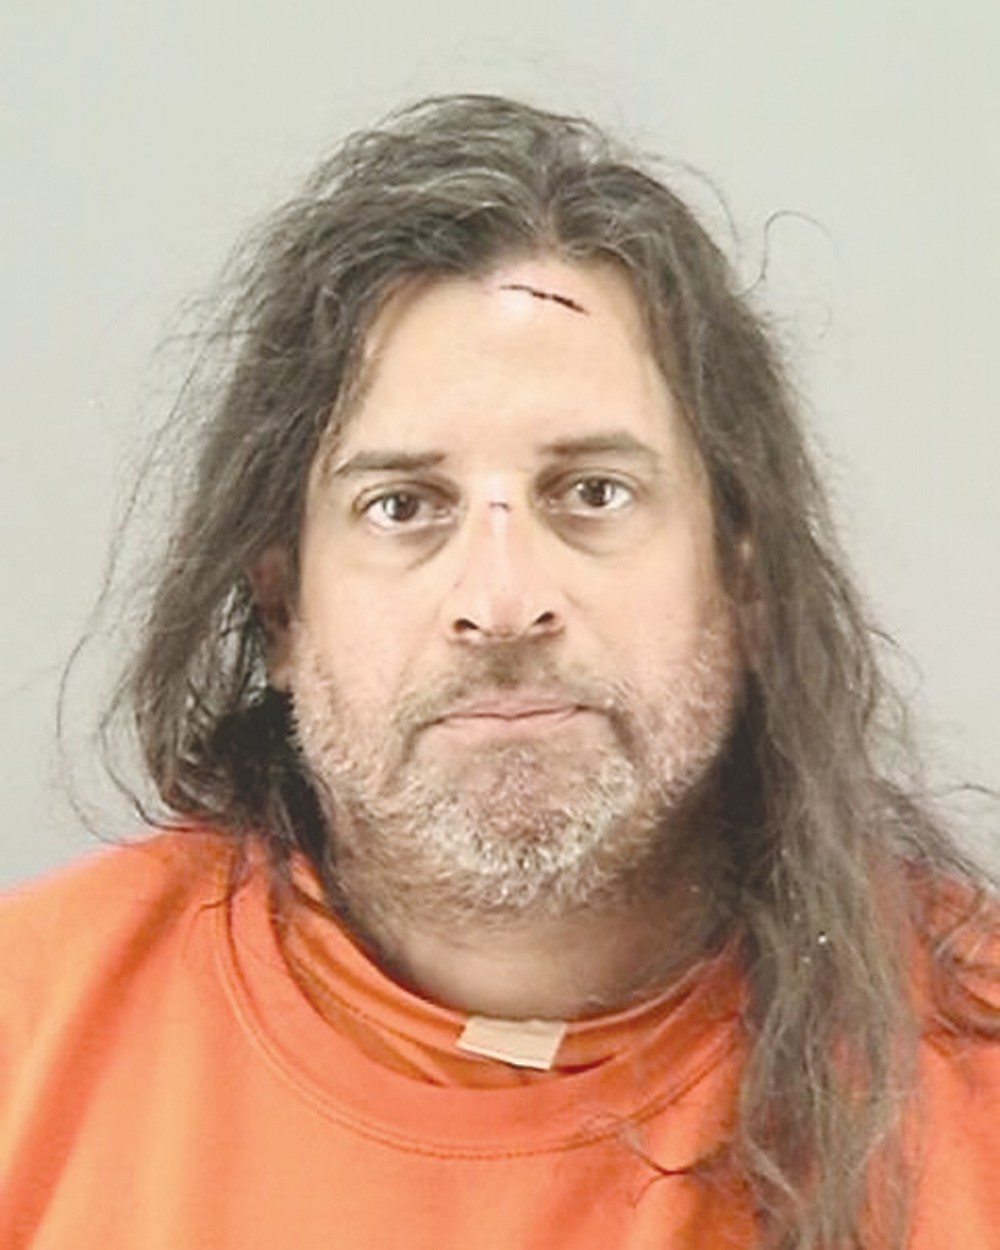 Jules Sibilio faces a homicide charge in the death of 42-year-old San Francisco resident Mary Atchison.